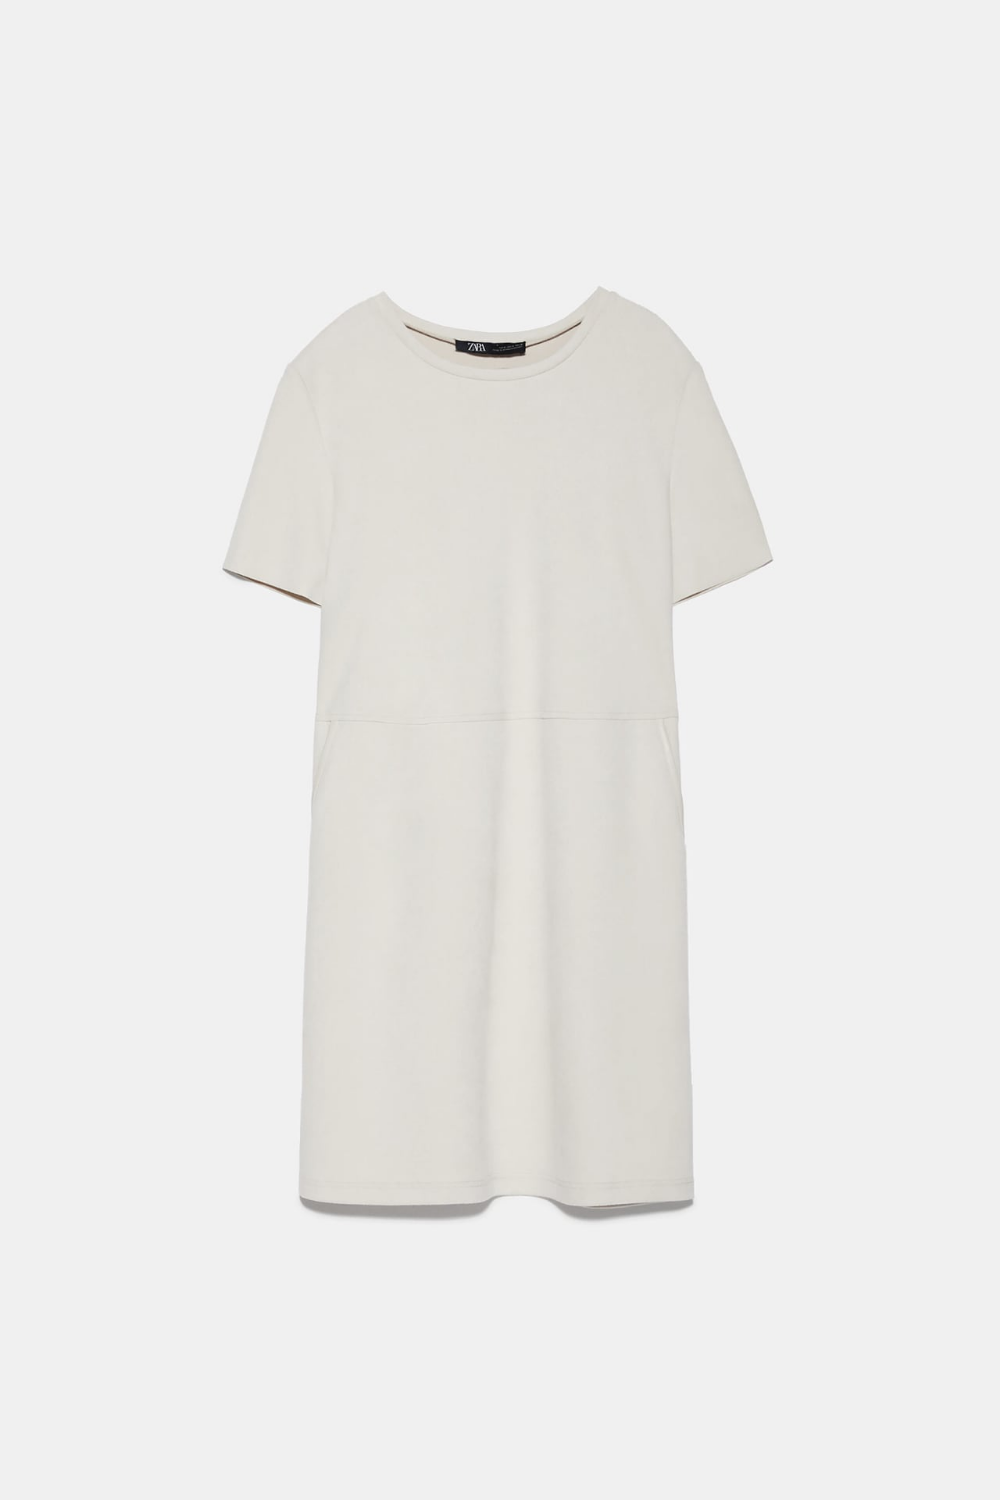 FAUX SUEDE DRESS ZARA France in 2020